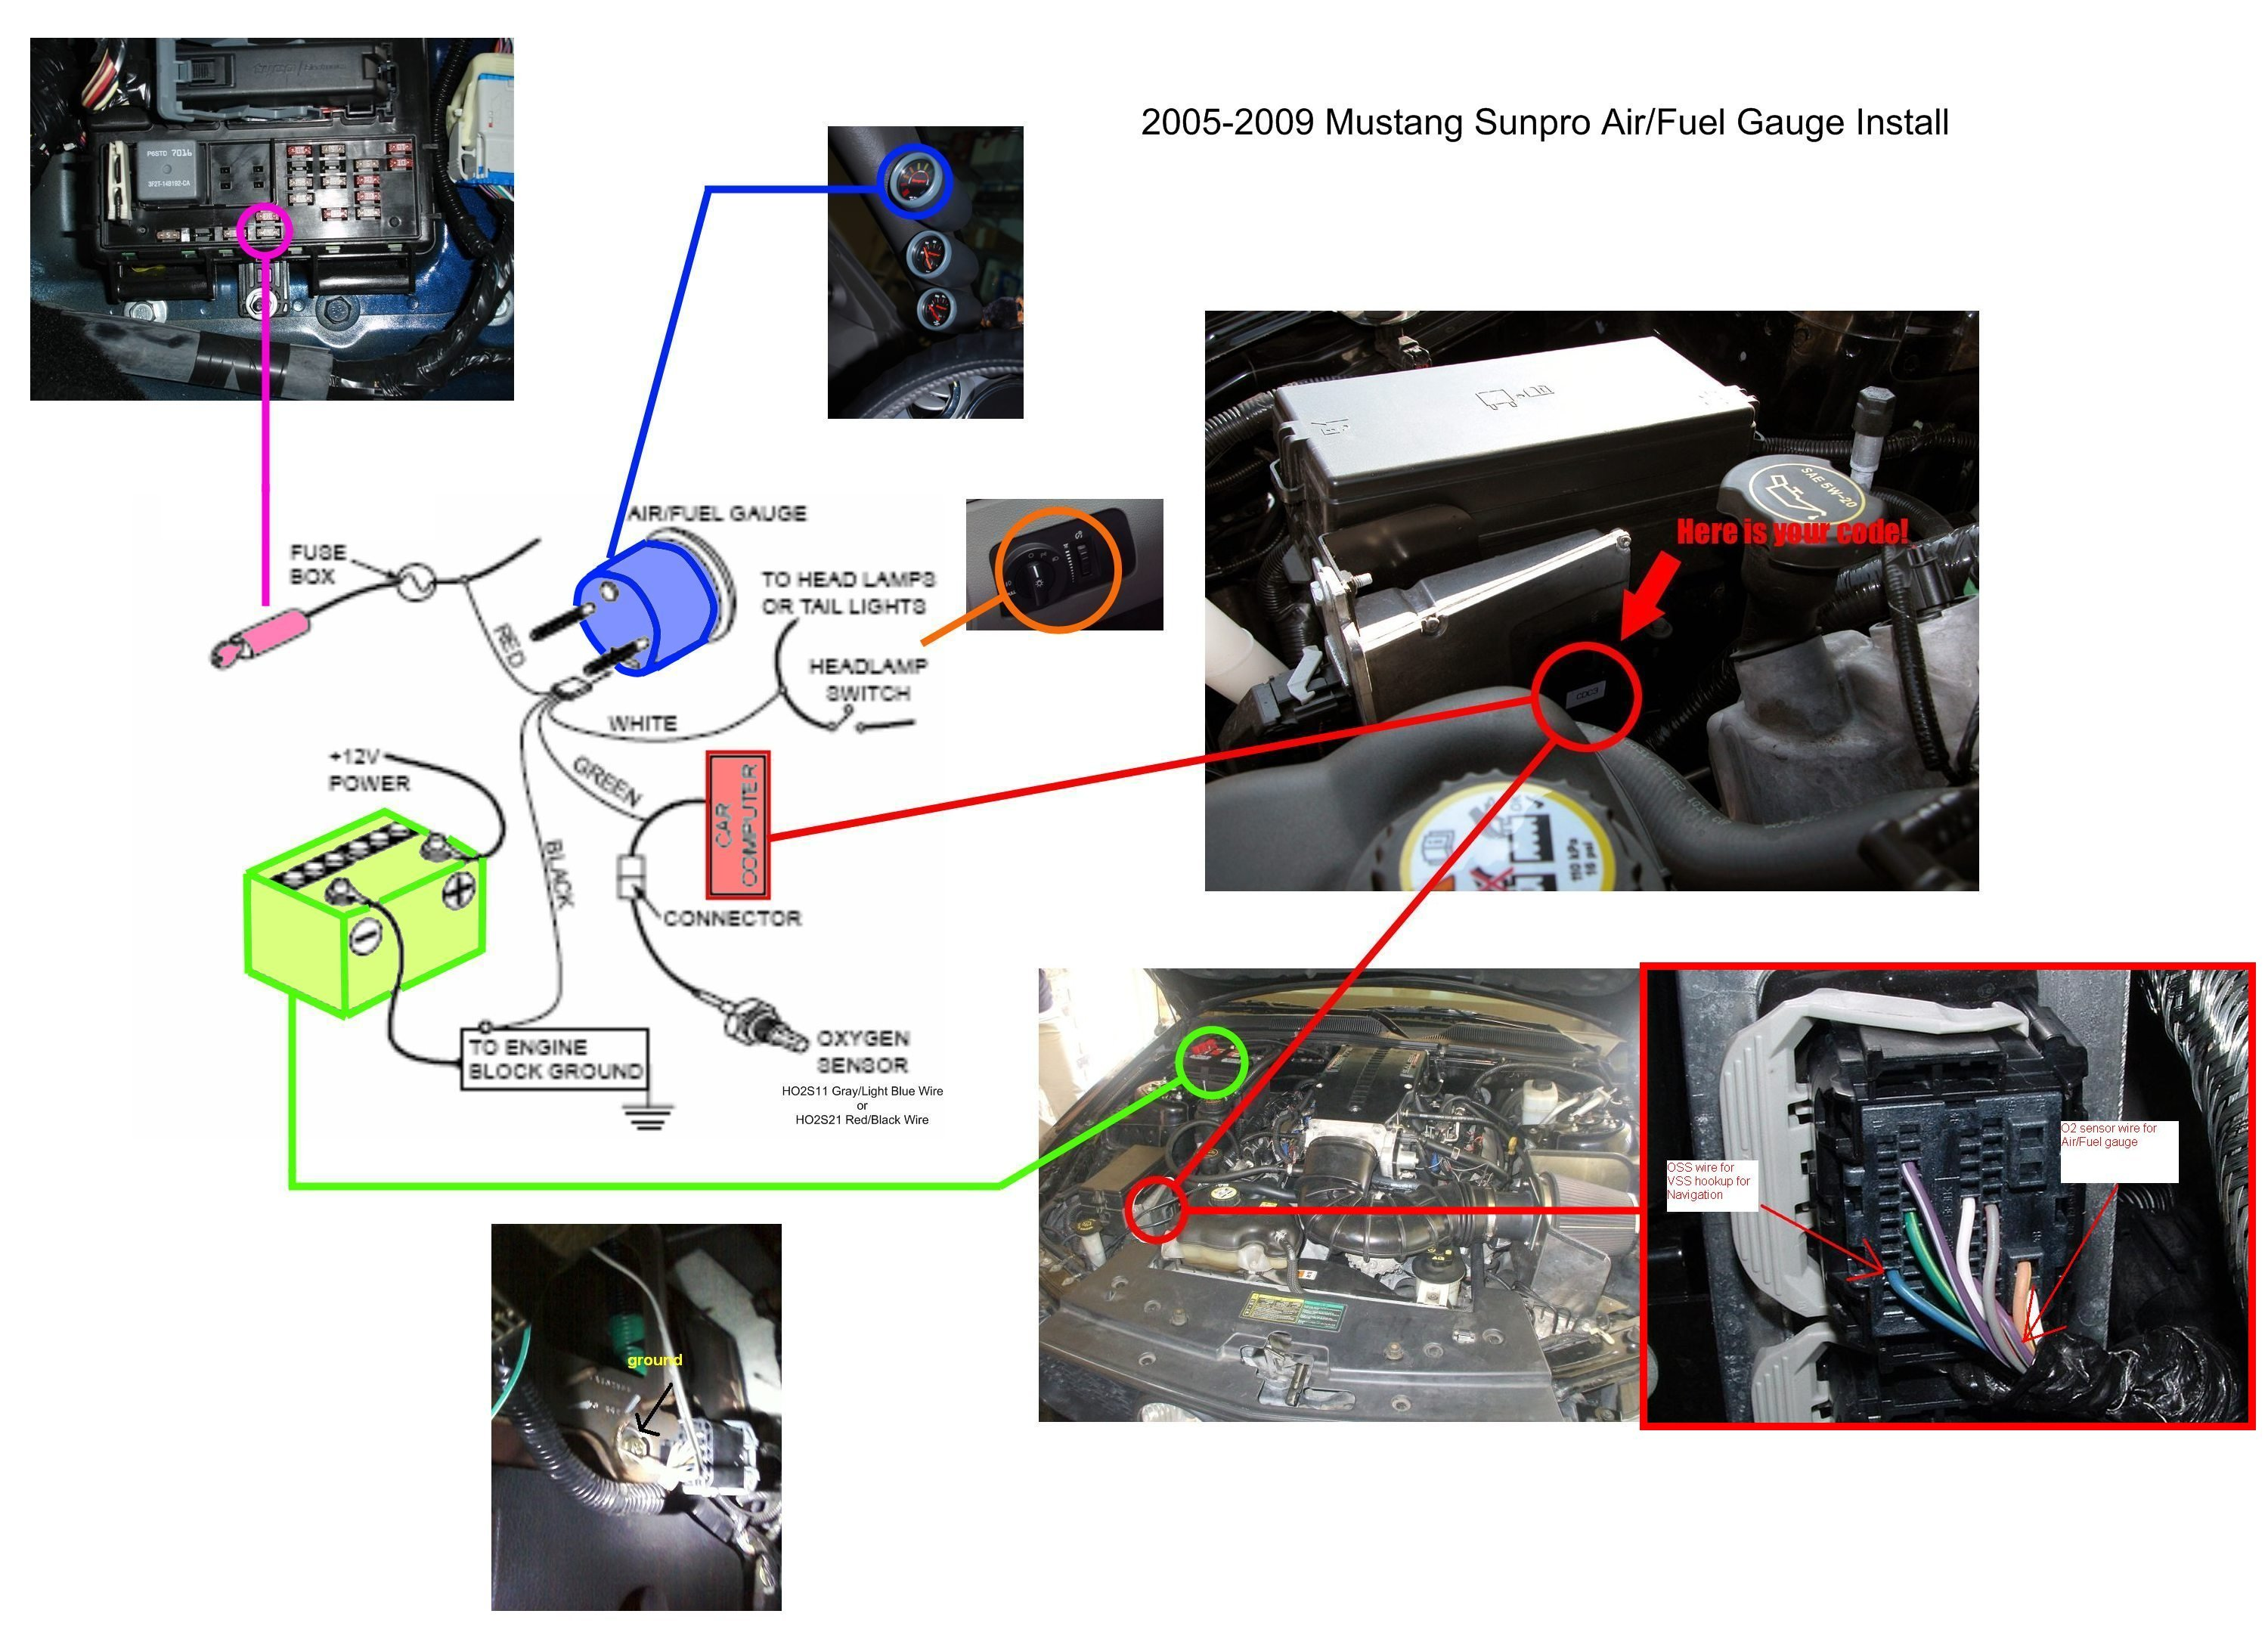 autometer air fuel ratio gauge wiring diagram balanced xlr to unbalanced 1 4 auto meter best library schematic name also